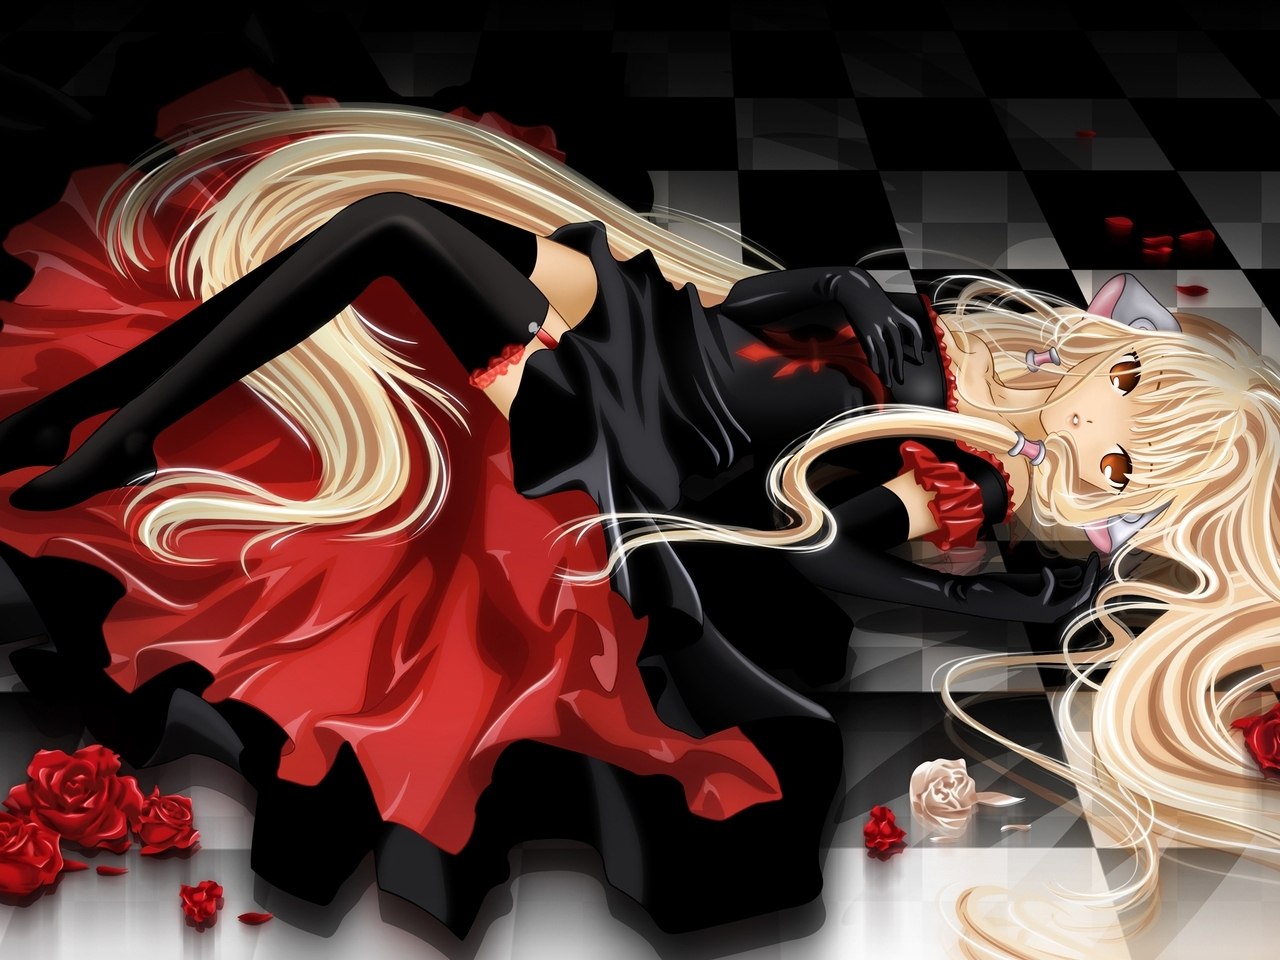 38412 download wallpaper Anime, Girls screensavers and pictures for free